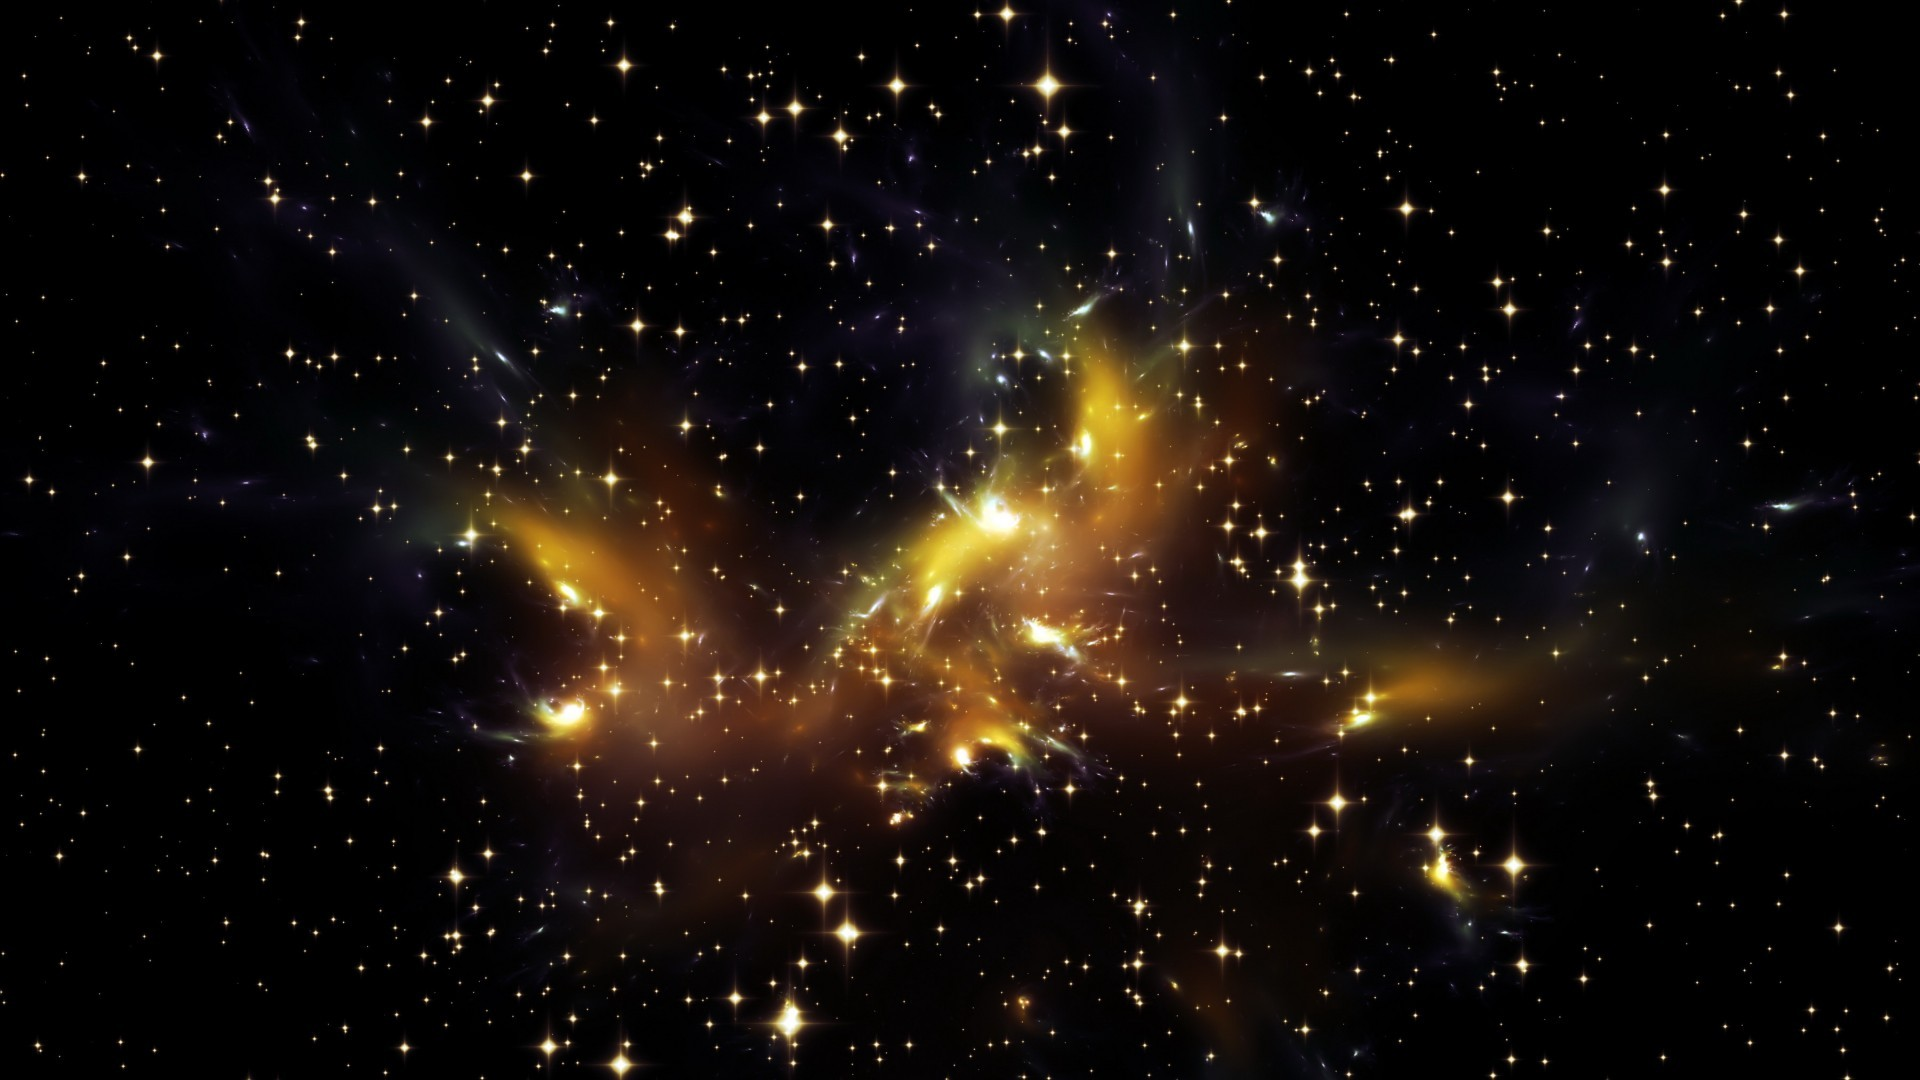 space stars background download